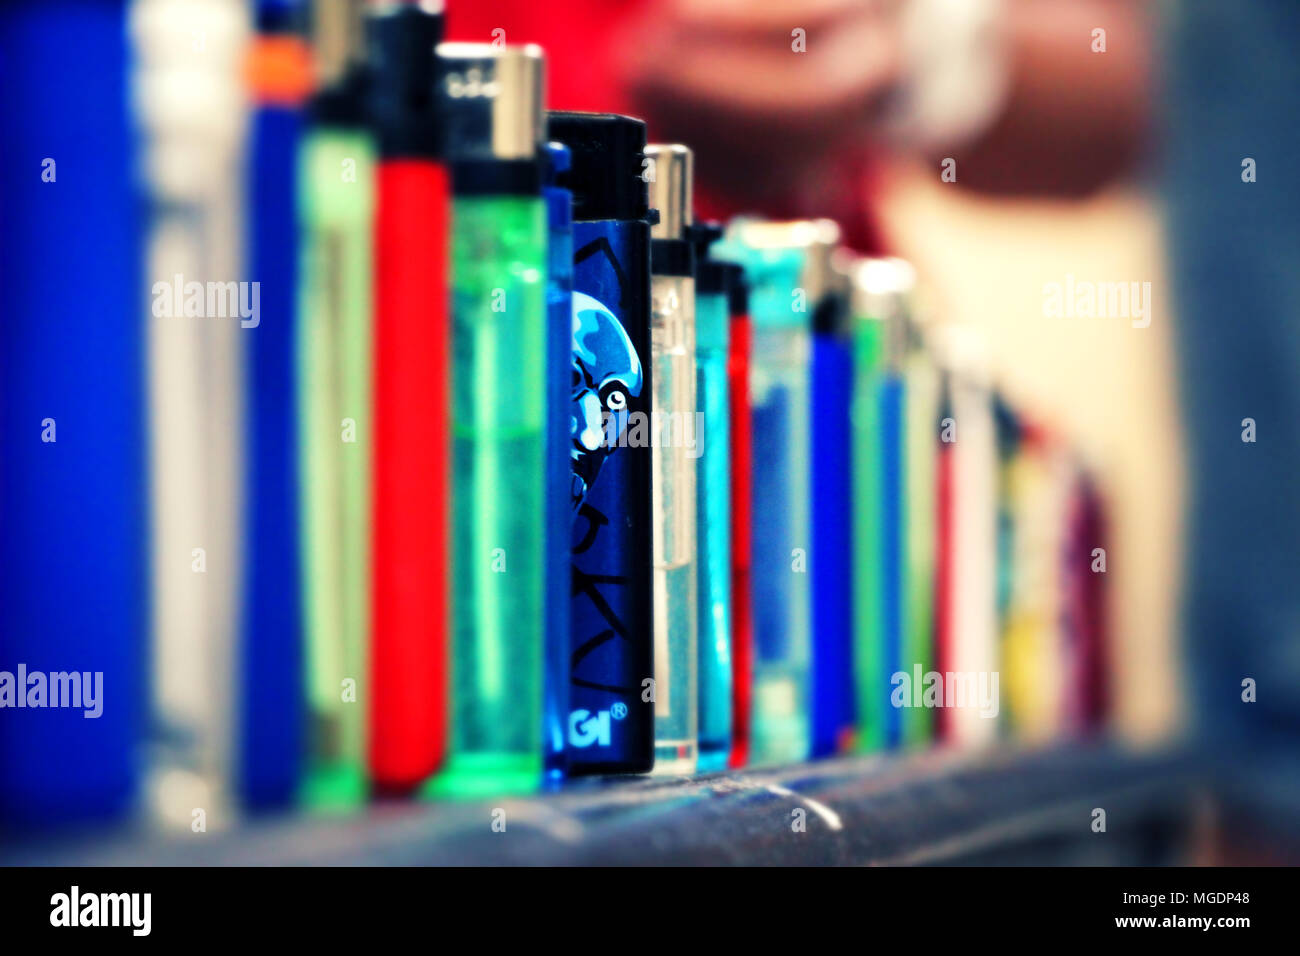 Lighters lined up. One lighter blue color stands out from the rest. Man's face Illustrated on it and it looks like he glances out. Narrow focus. - Stock Image